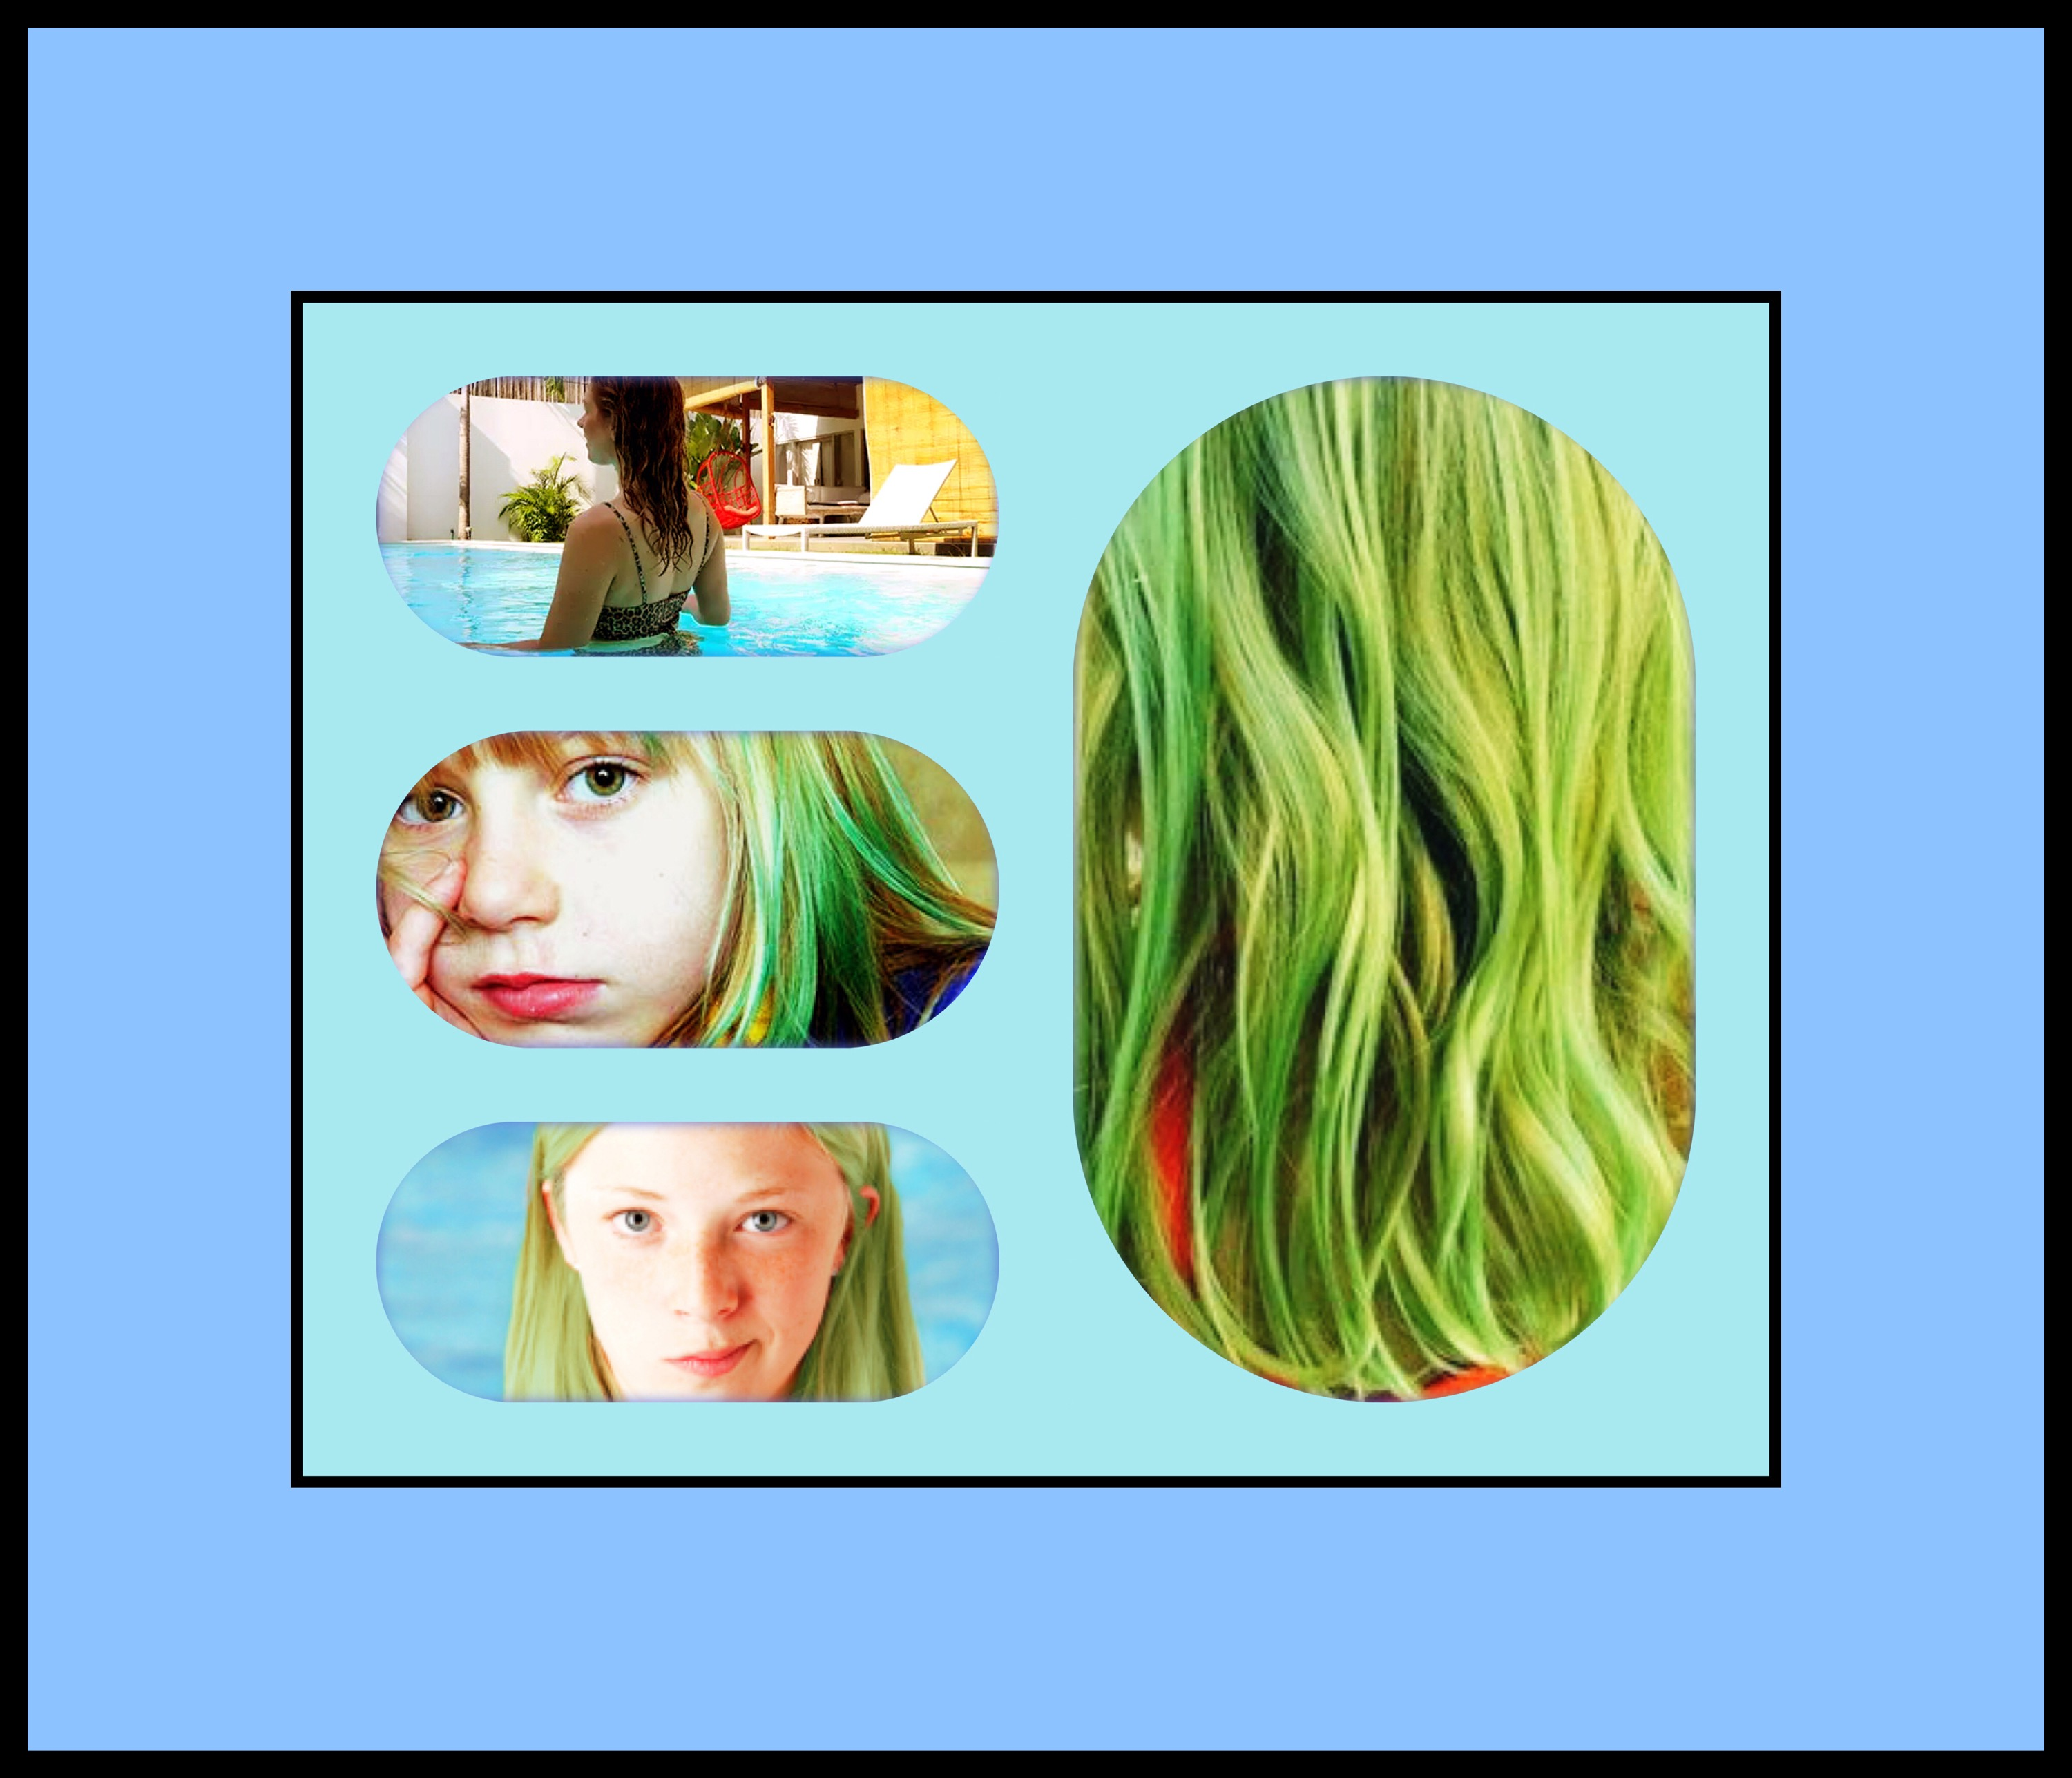 How To Prevent Or Remove Green Color From Blond Hair Caused By